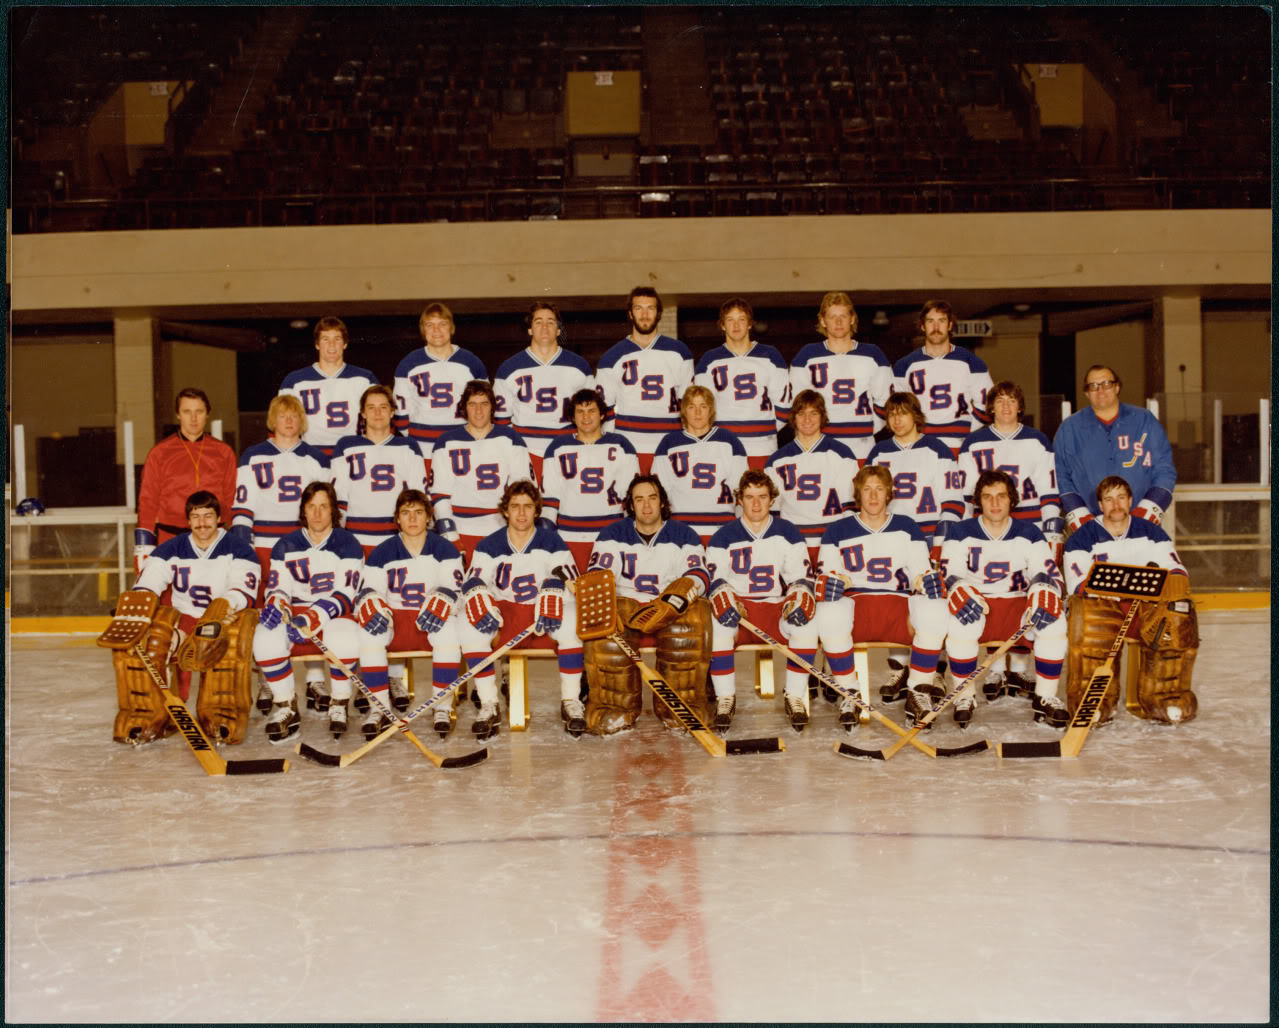 1980 olympic hockey team stats: